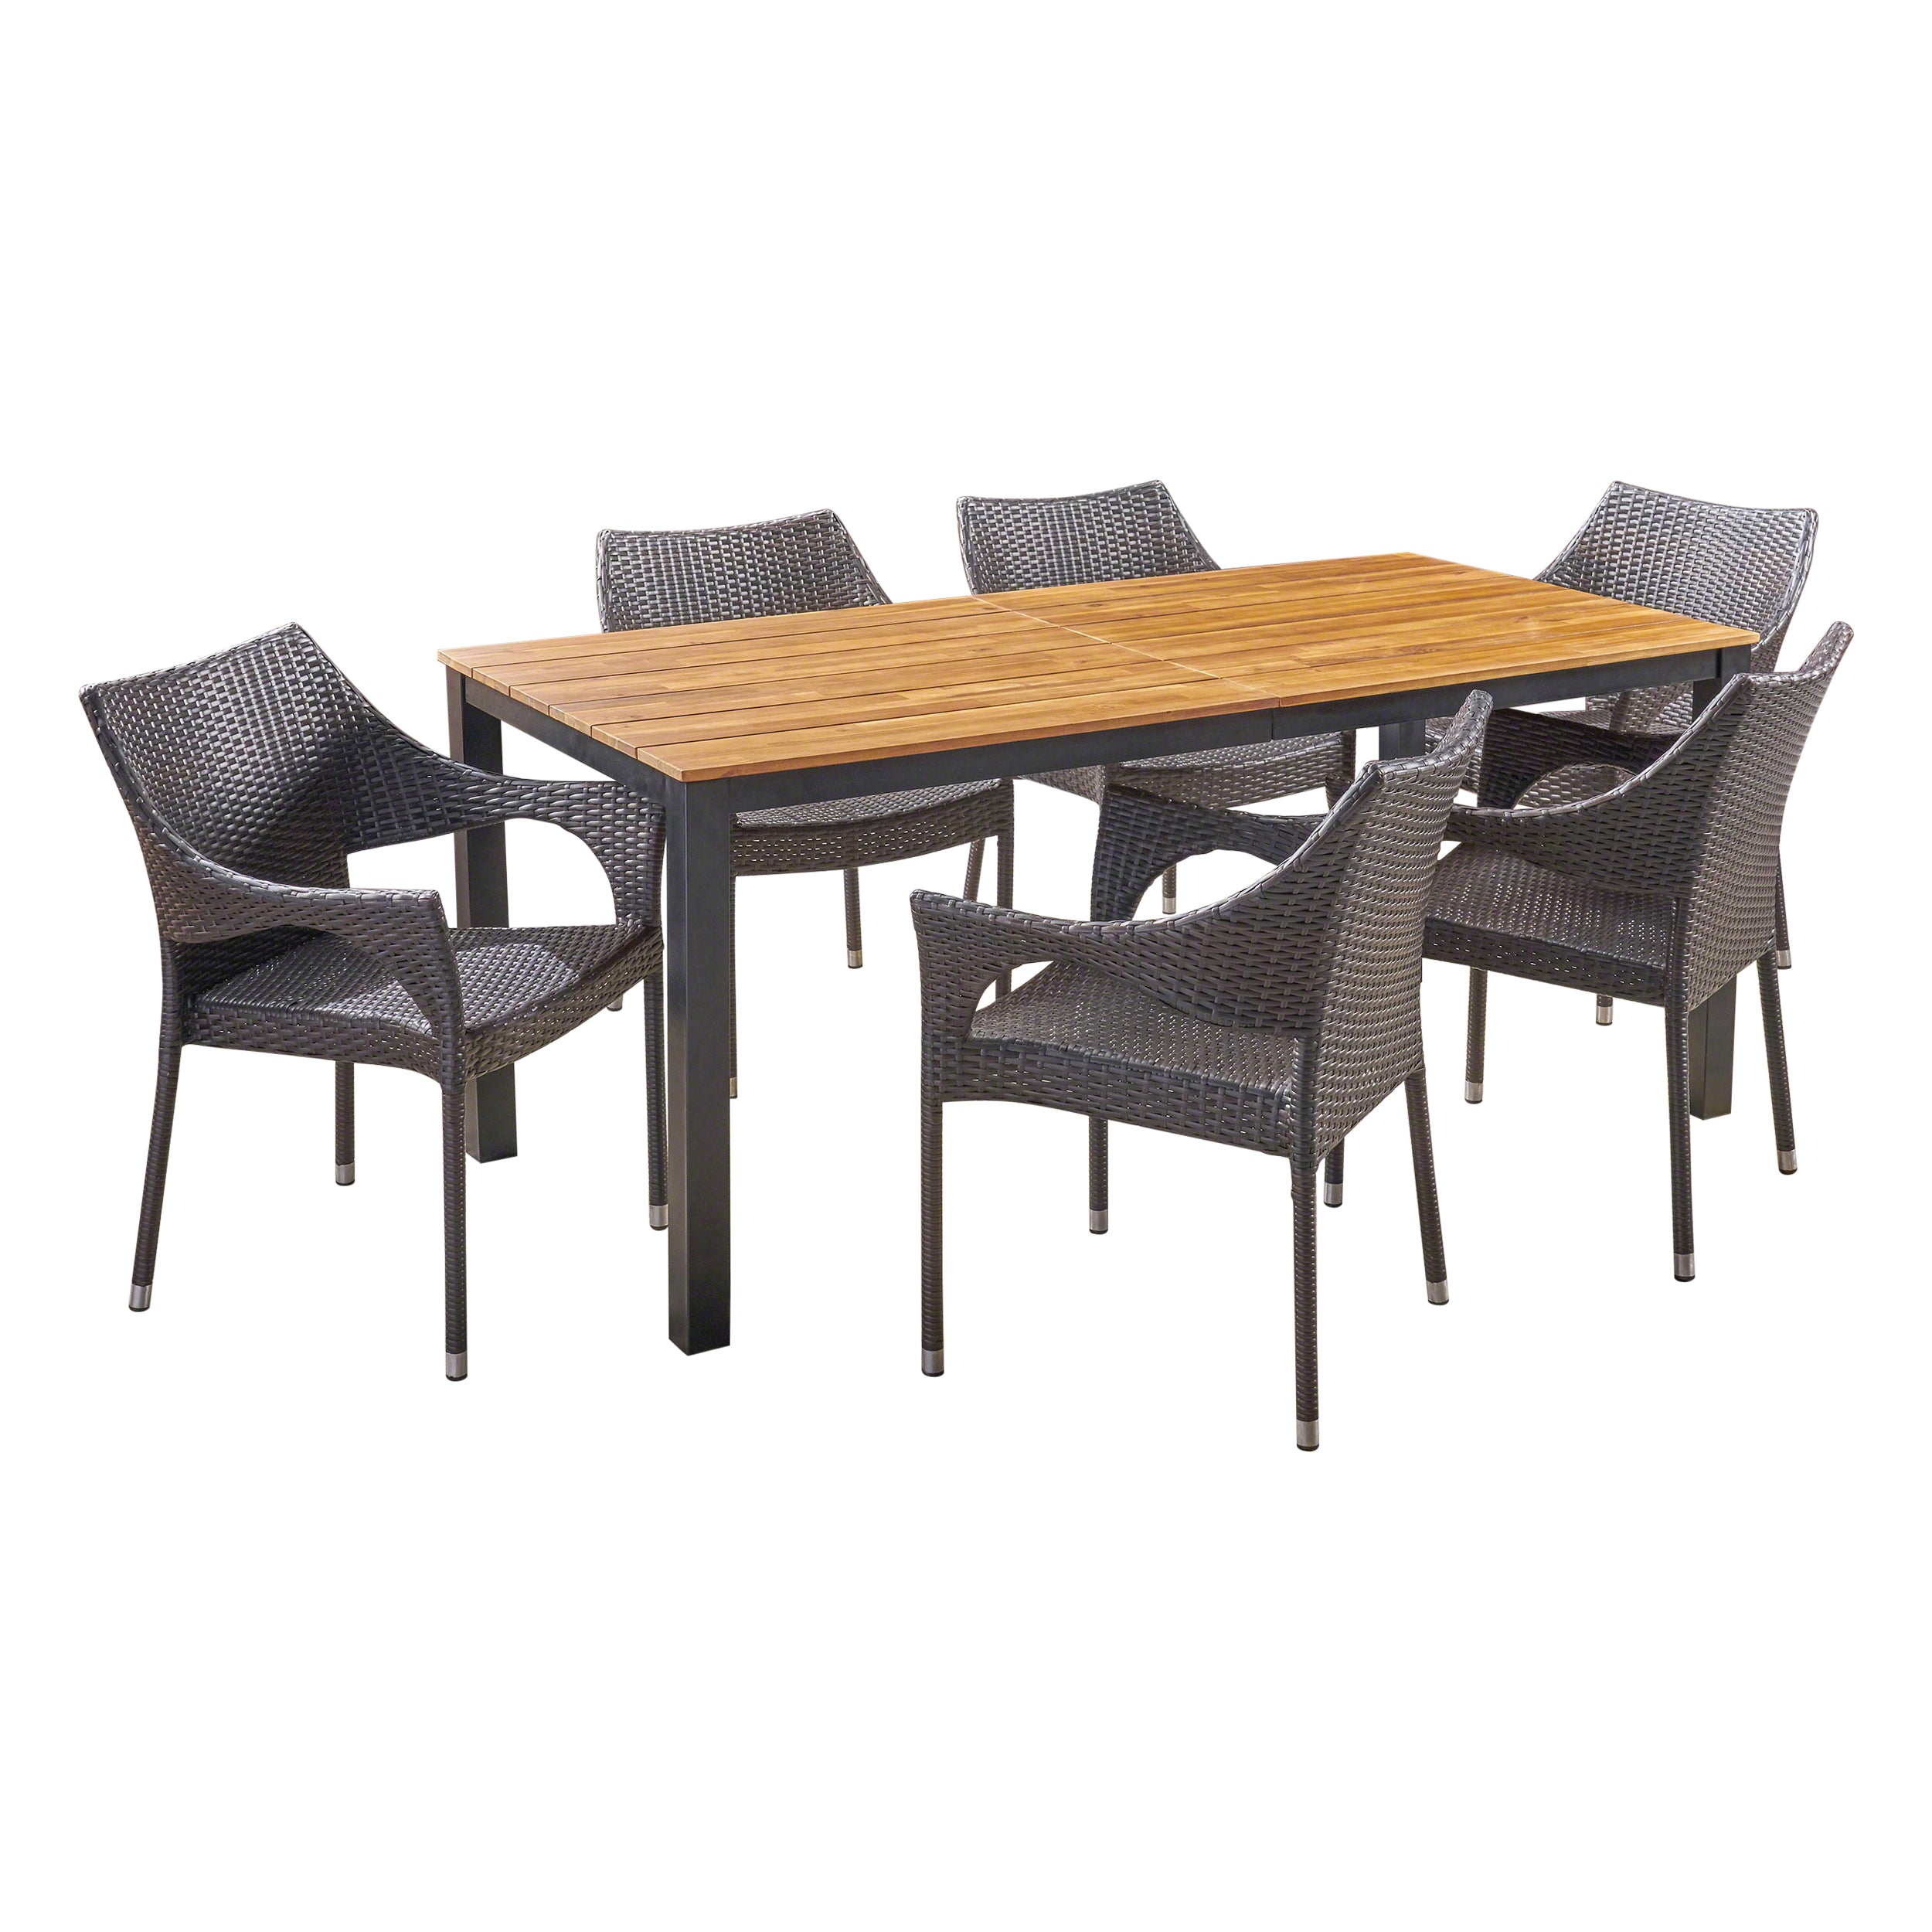 Amberlynn Outdoor 7 Piece Acacia Wood Dining Set with Stacking Wicker Chairs Teak and Multi Brown Default Title